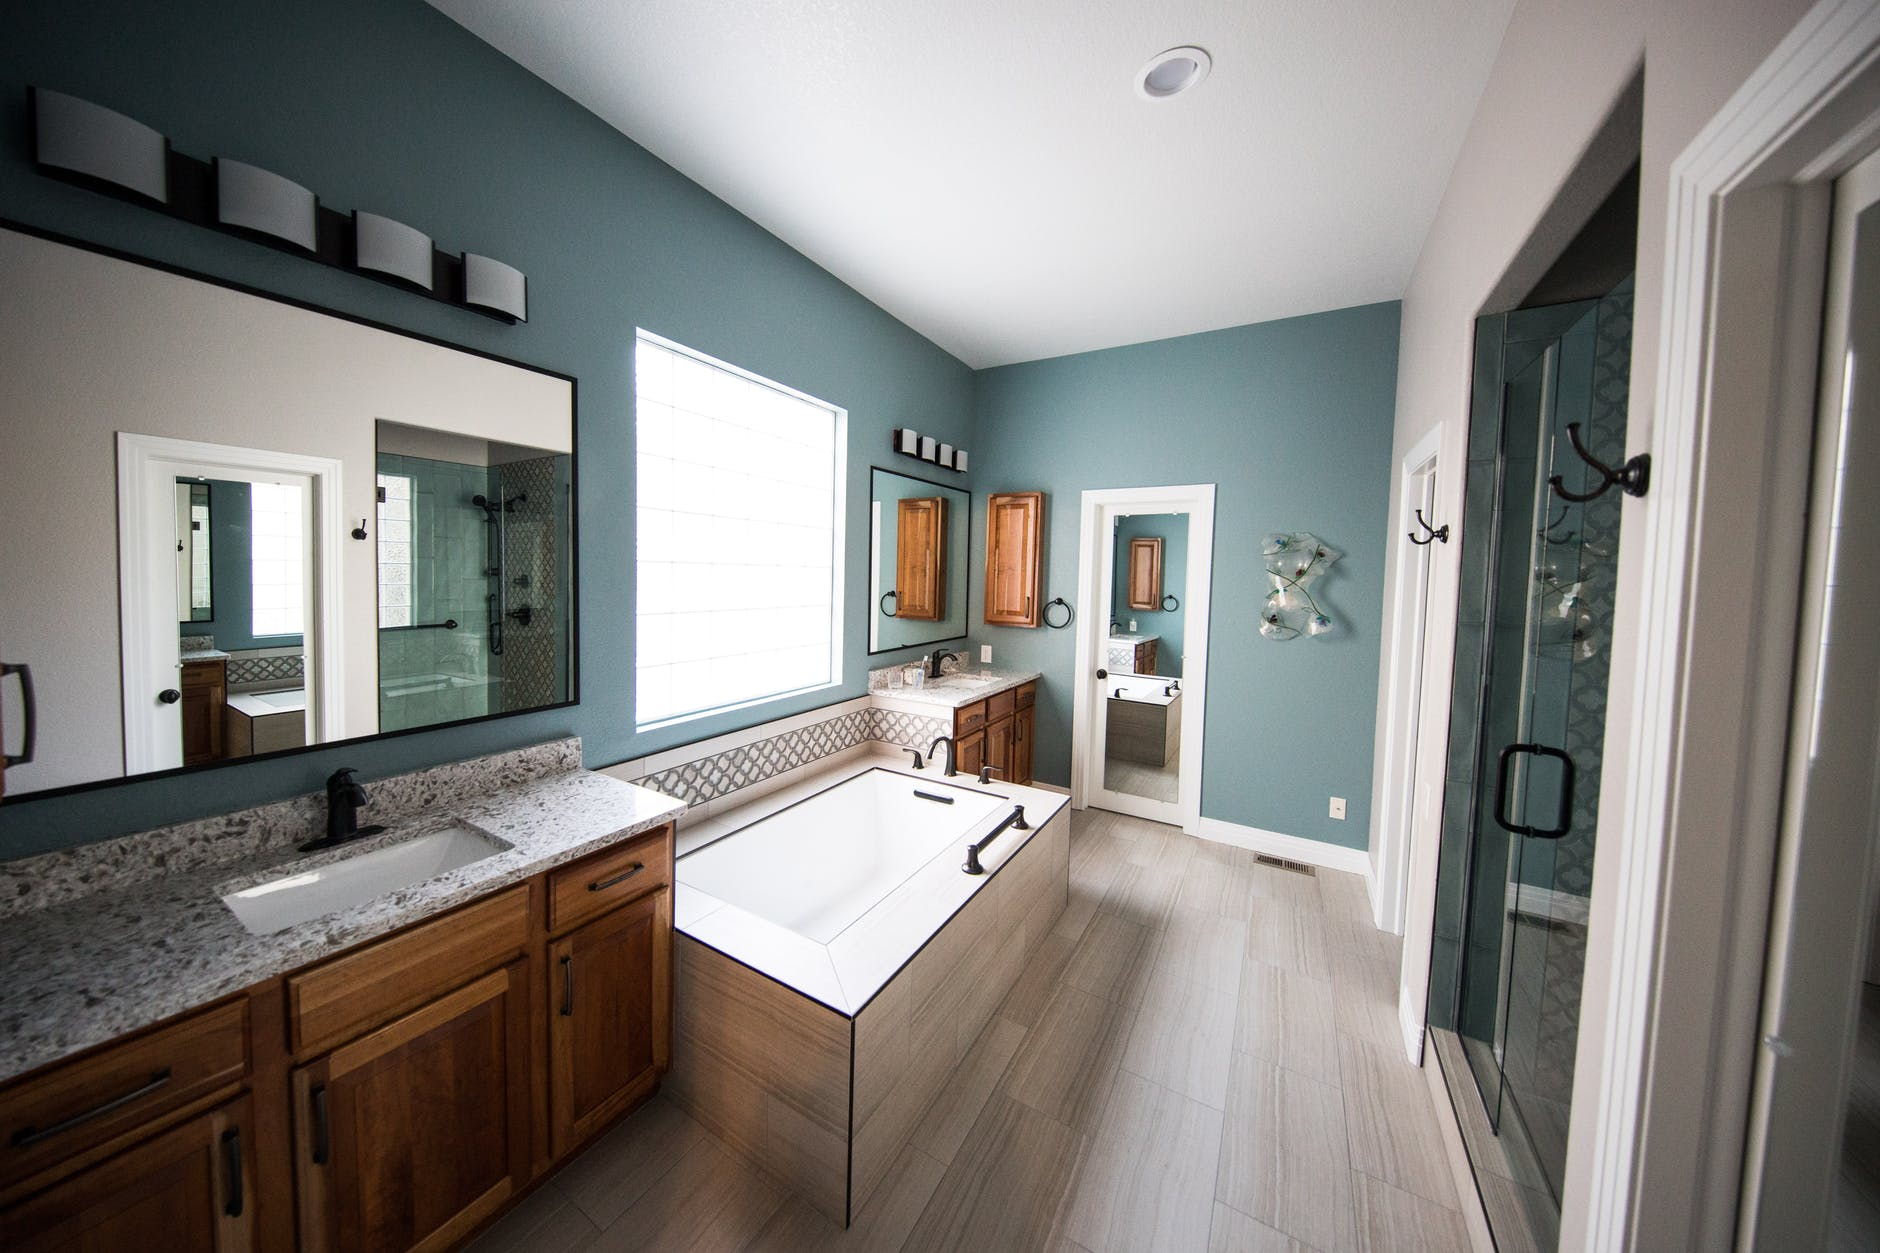 Factors to Consider Before Decorating Your Bathroom